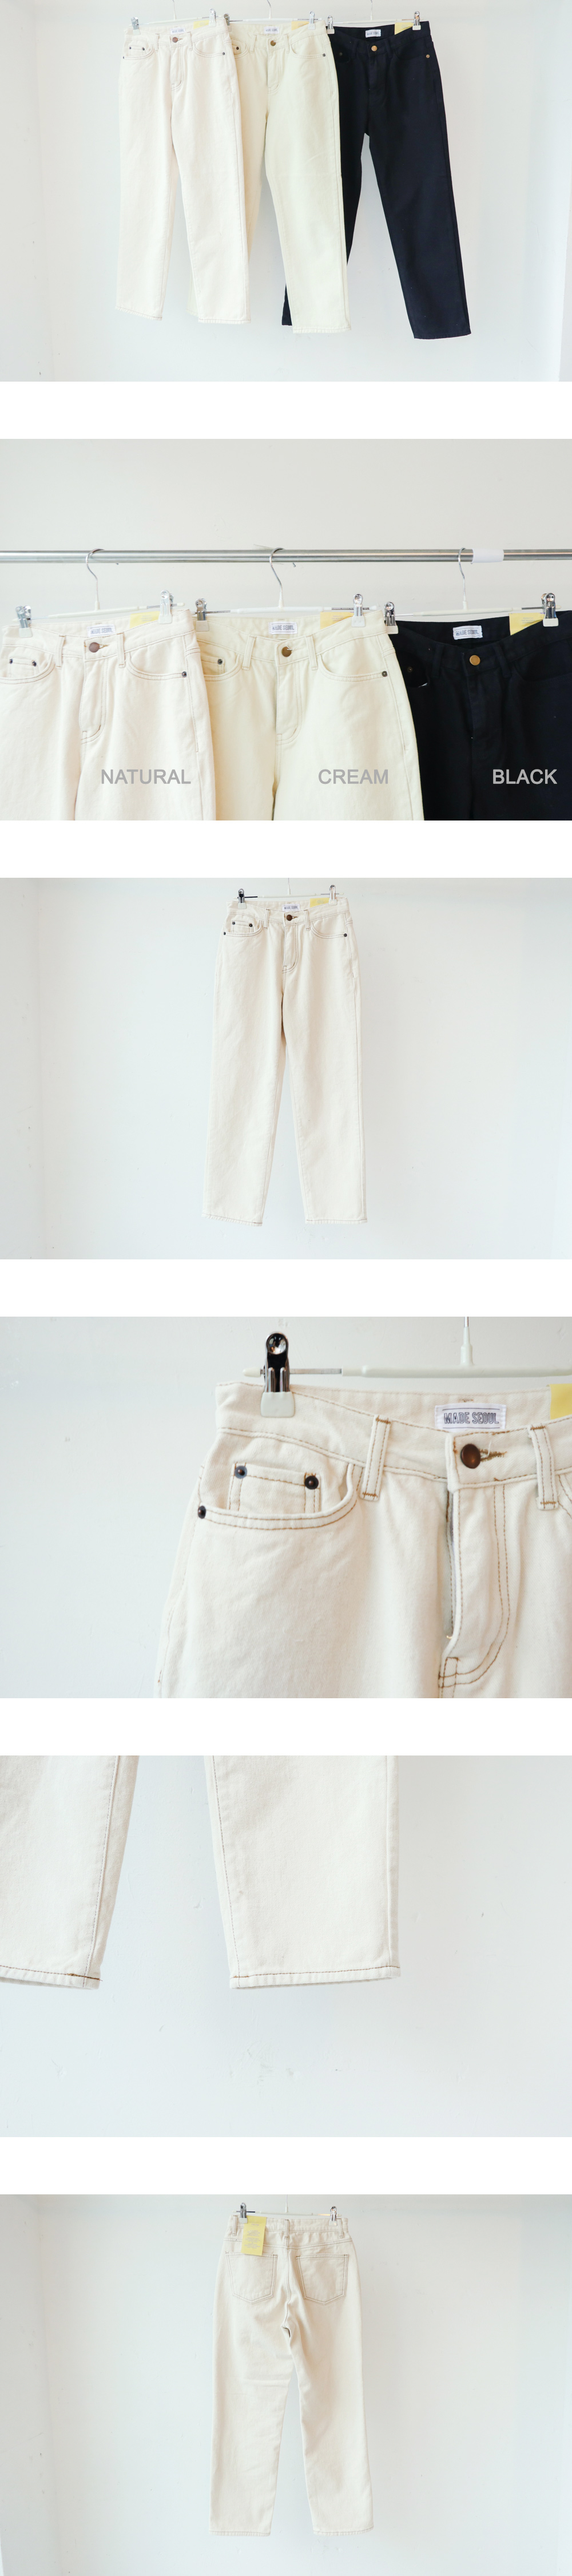 522 napping basic date pants